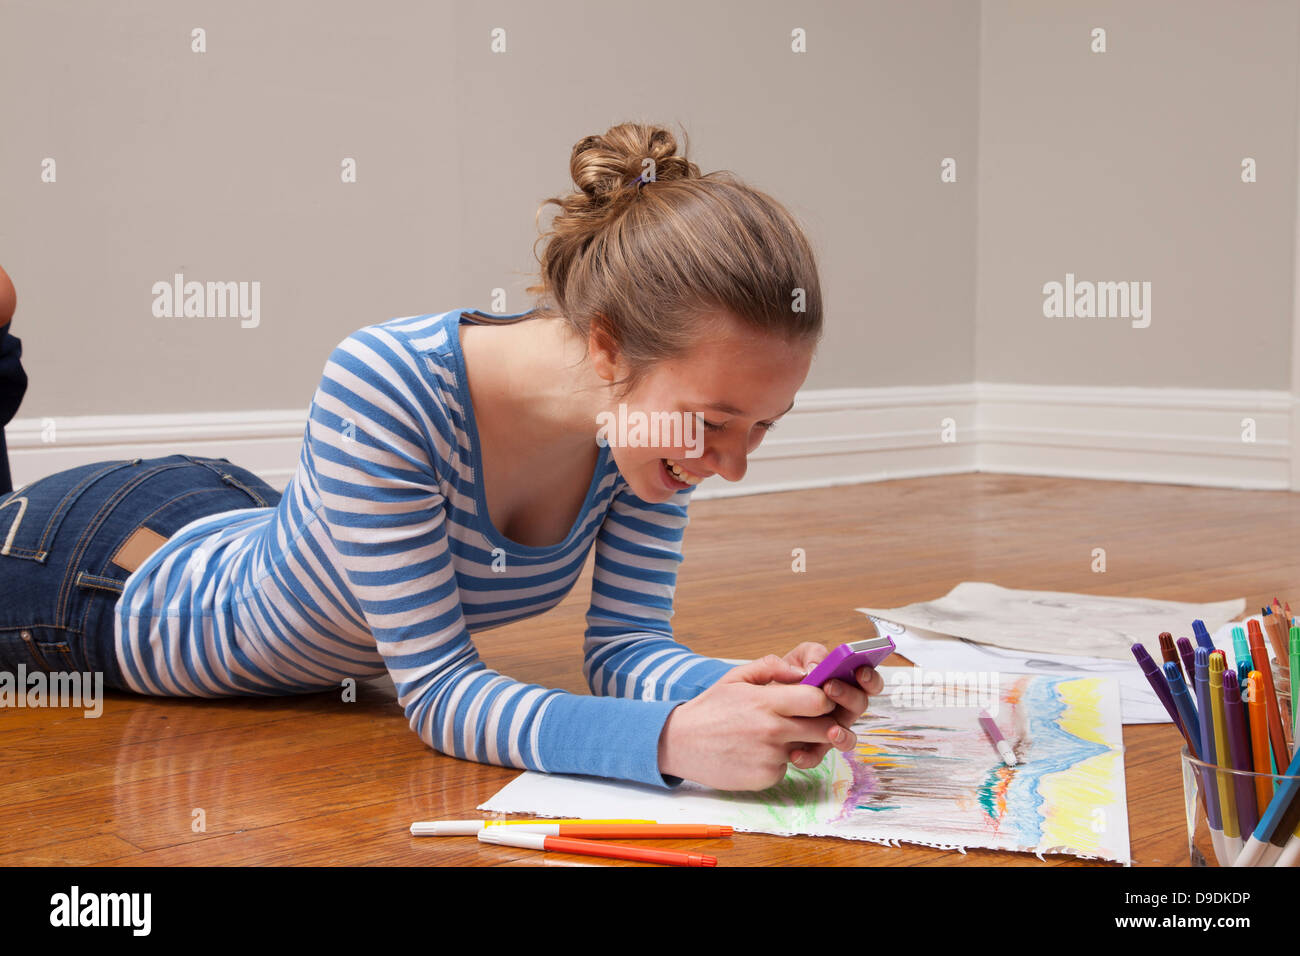 Girl lying on floor with smartphone and art materials - Stock Image